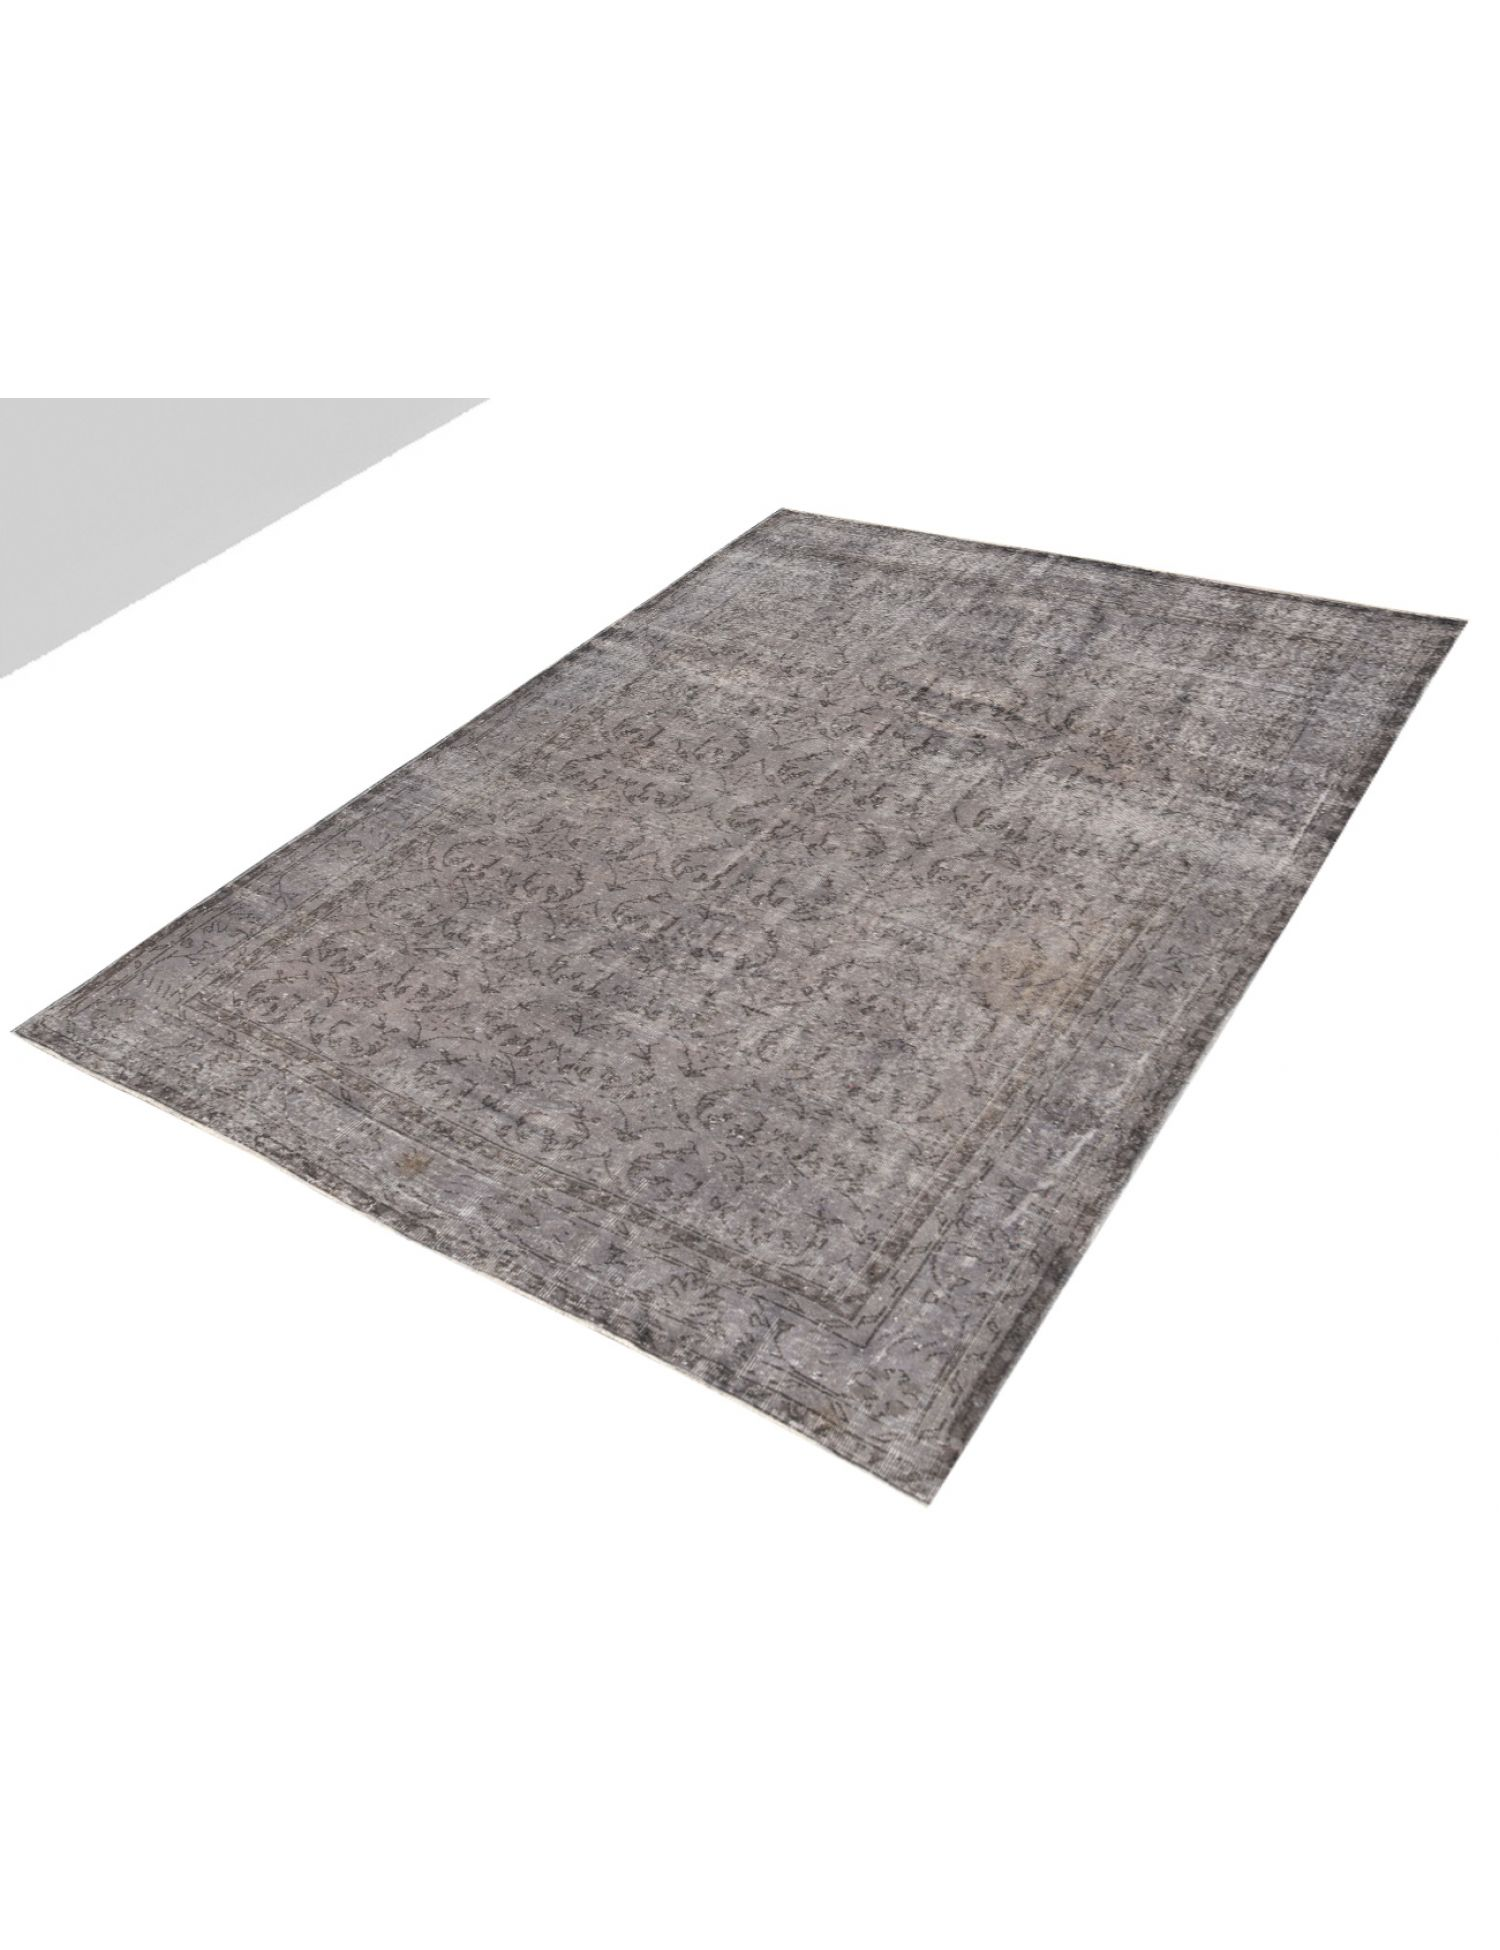 Vintage Carpet  grey <br/>306 x 195 cm